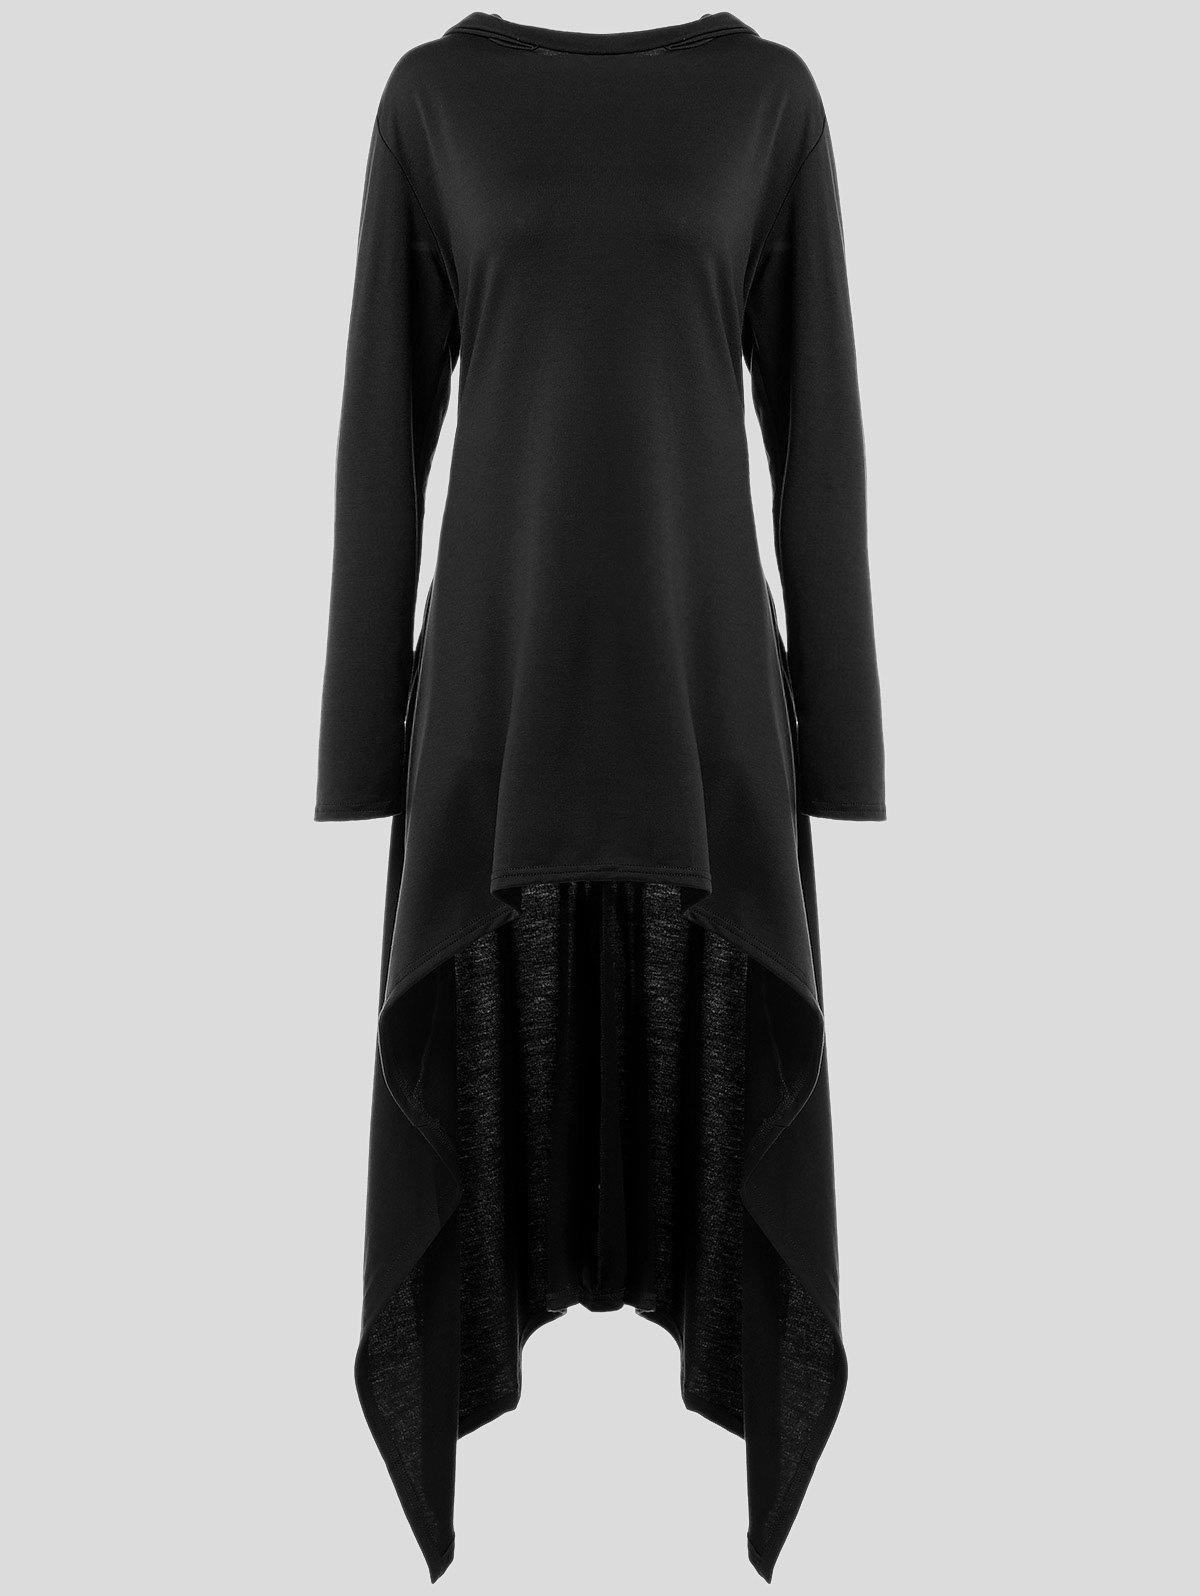 Pullover Asymmetric HoodieWOMEN<br><br>Size: 4XL; Color: BLACK; Material: Polyester; Shirt Length: Long; Sleeve Length: Full; Style: Fashion; Pattern Style: Solid; Season: Fall,Spring; Weight: 0.668kg; Package Contents: 1 x Hoodie;